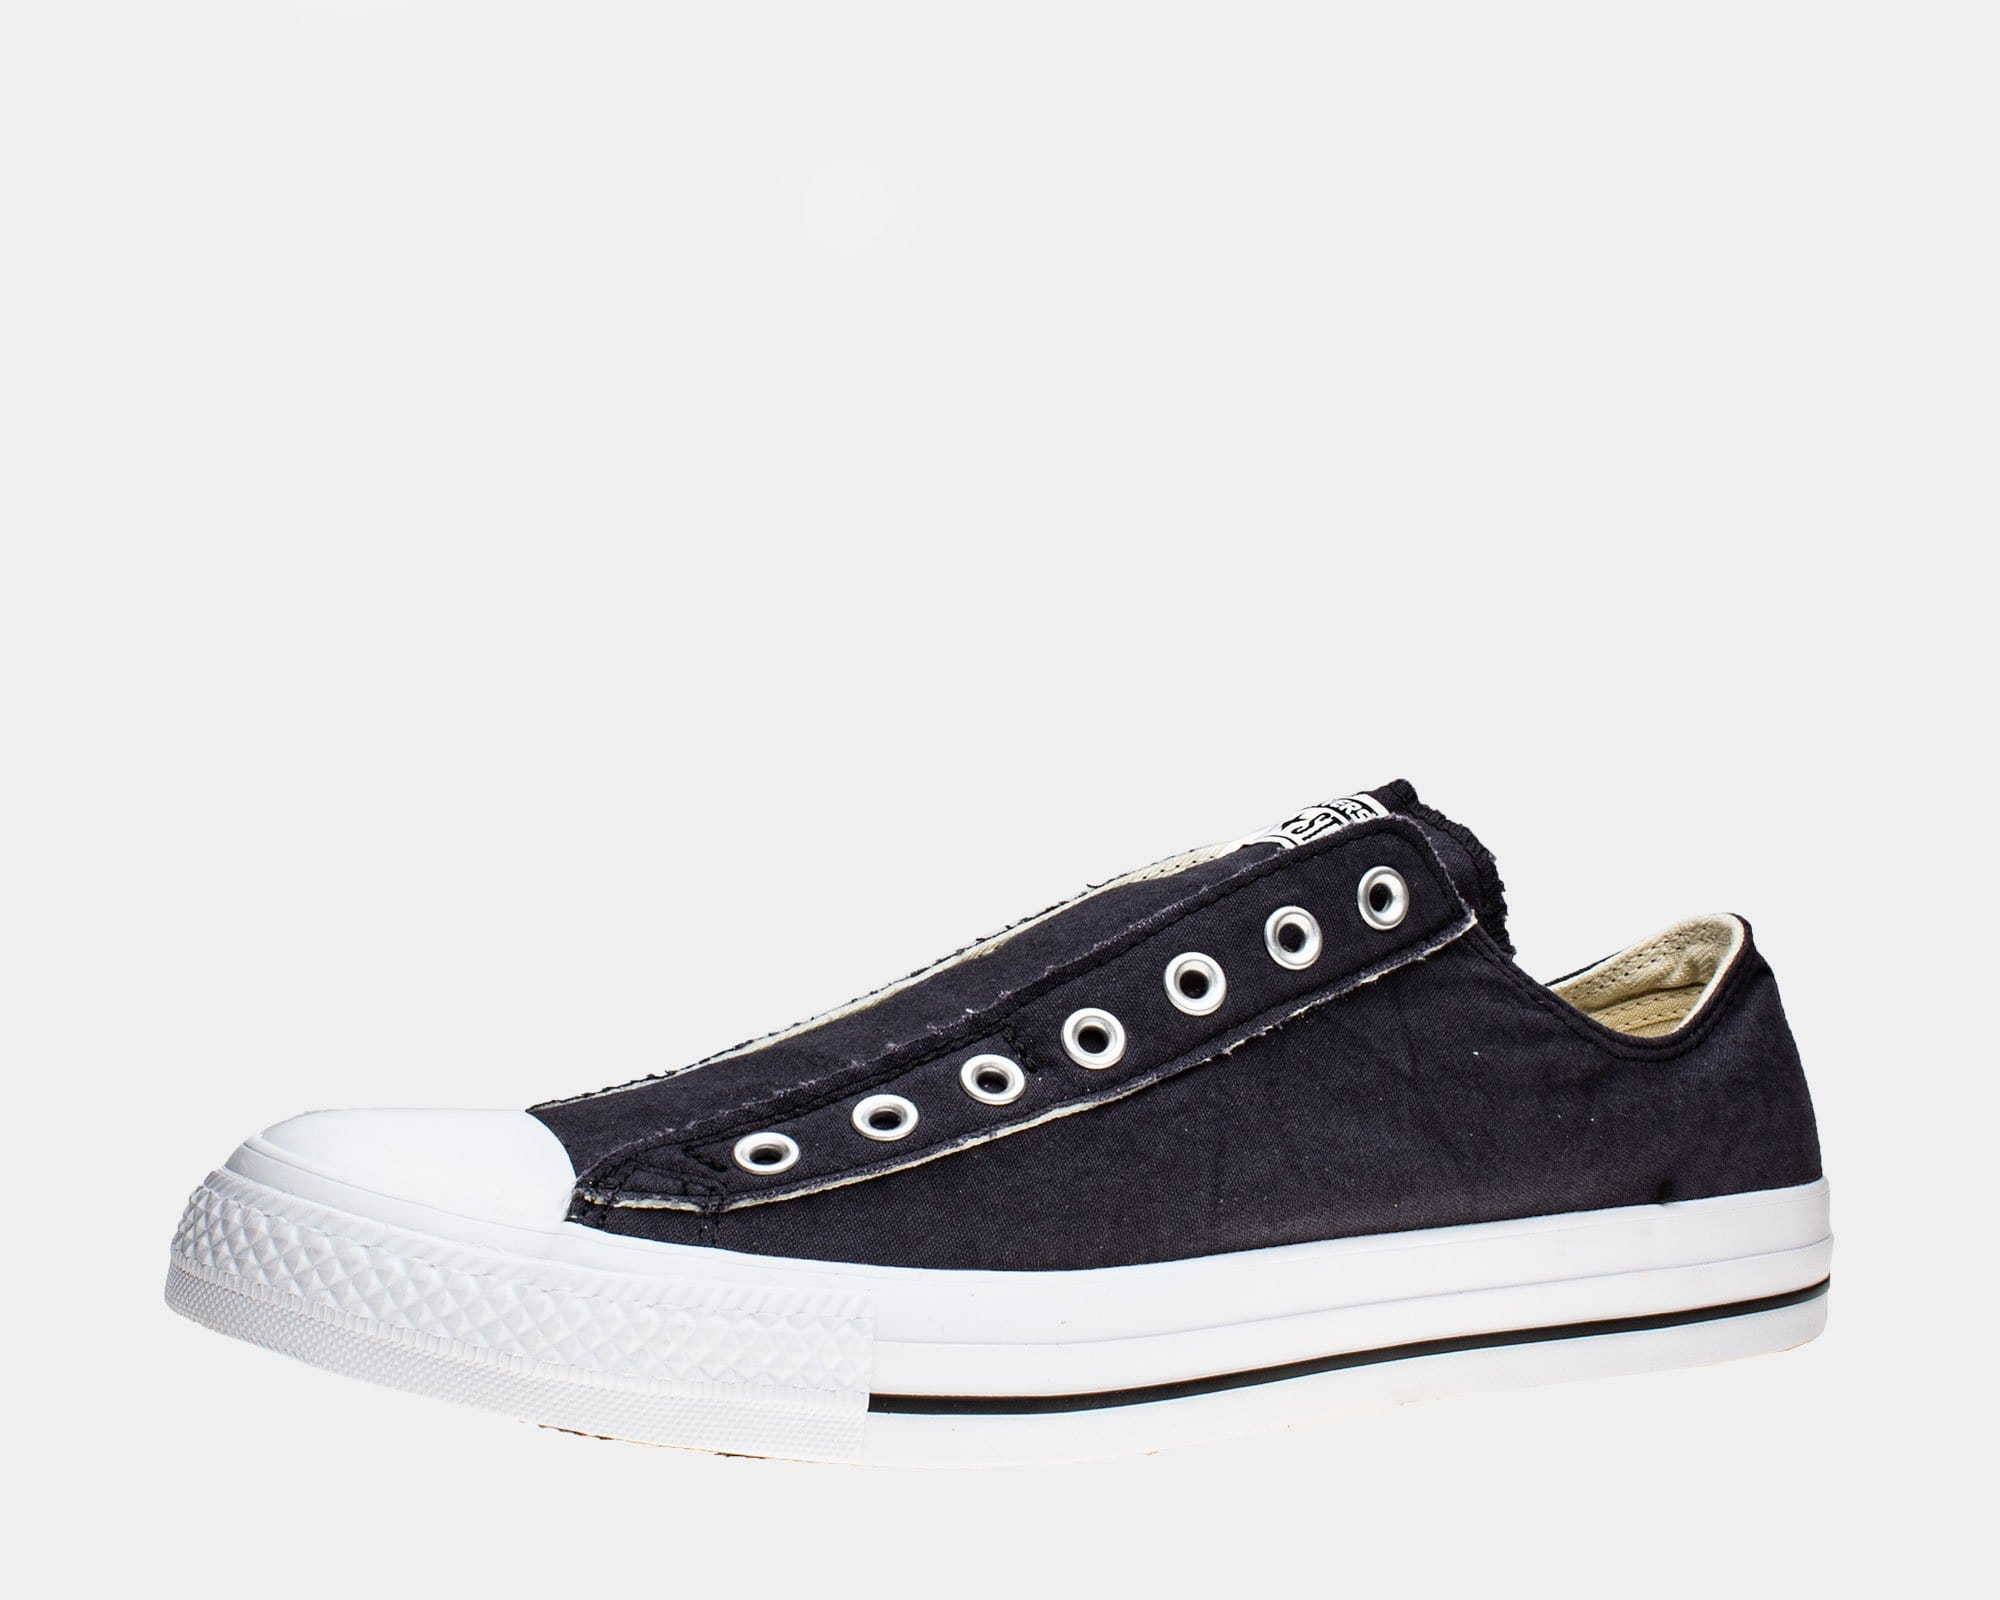 c695566f7250 Converse Chuck Taylor All Star Slip-Ons - Mens Large Sizes